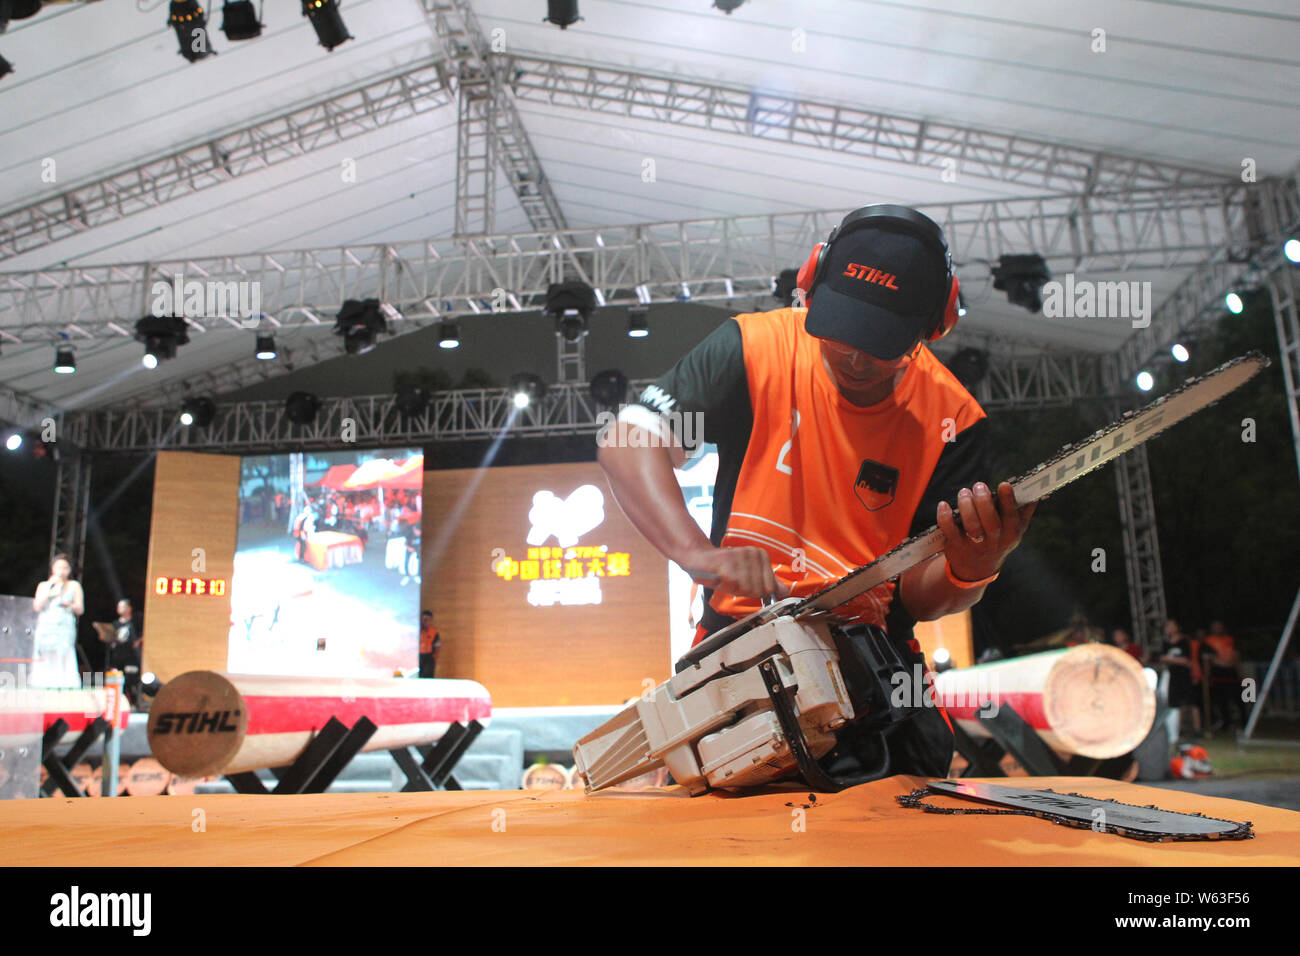 Stihl Chainsaws From China